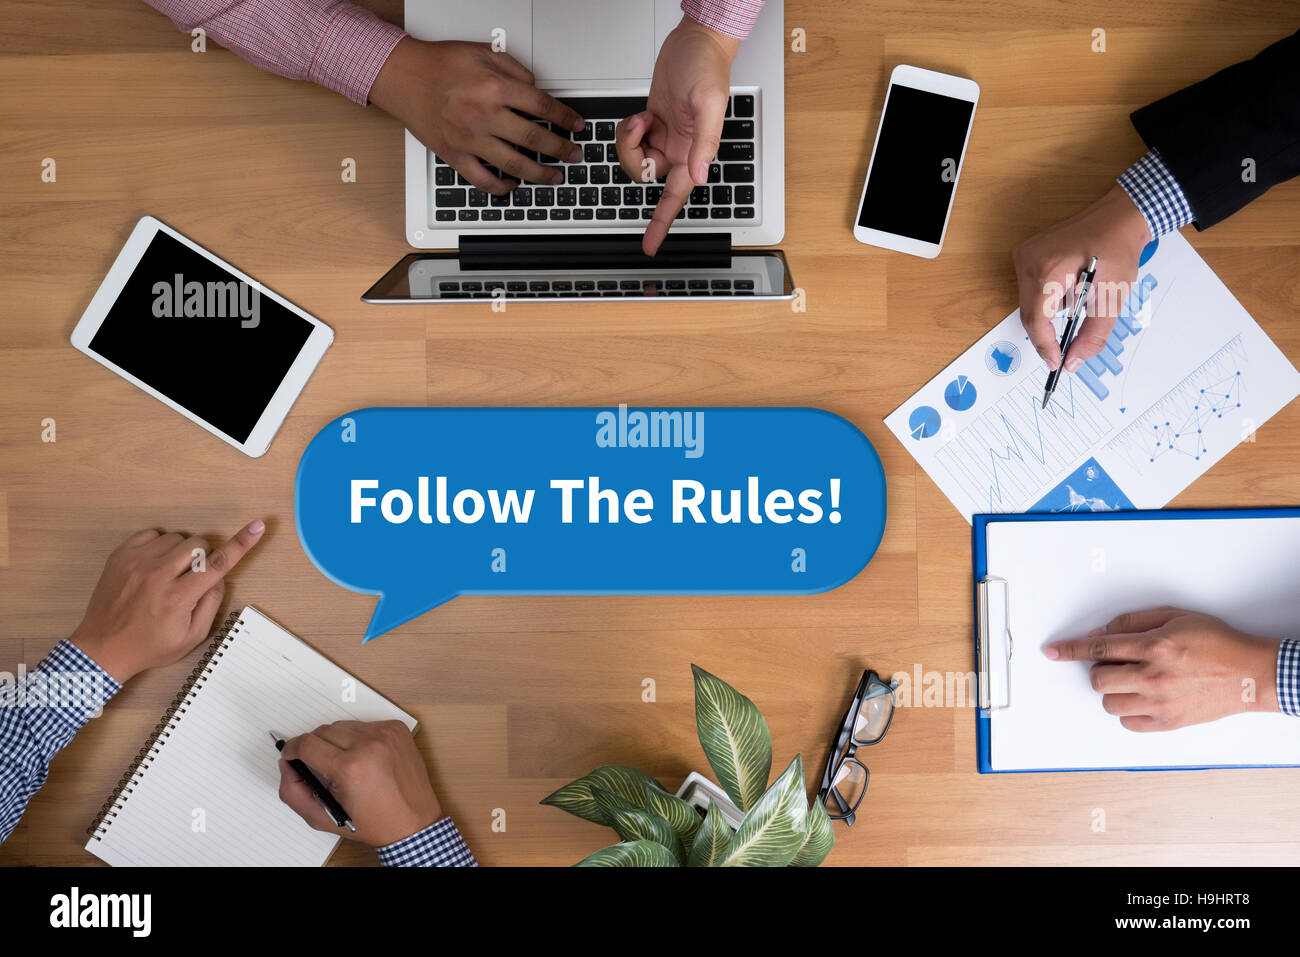 Follow The Rules! - Stock Image